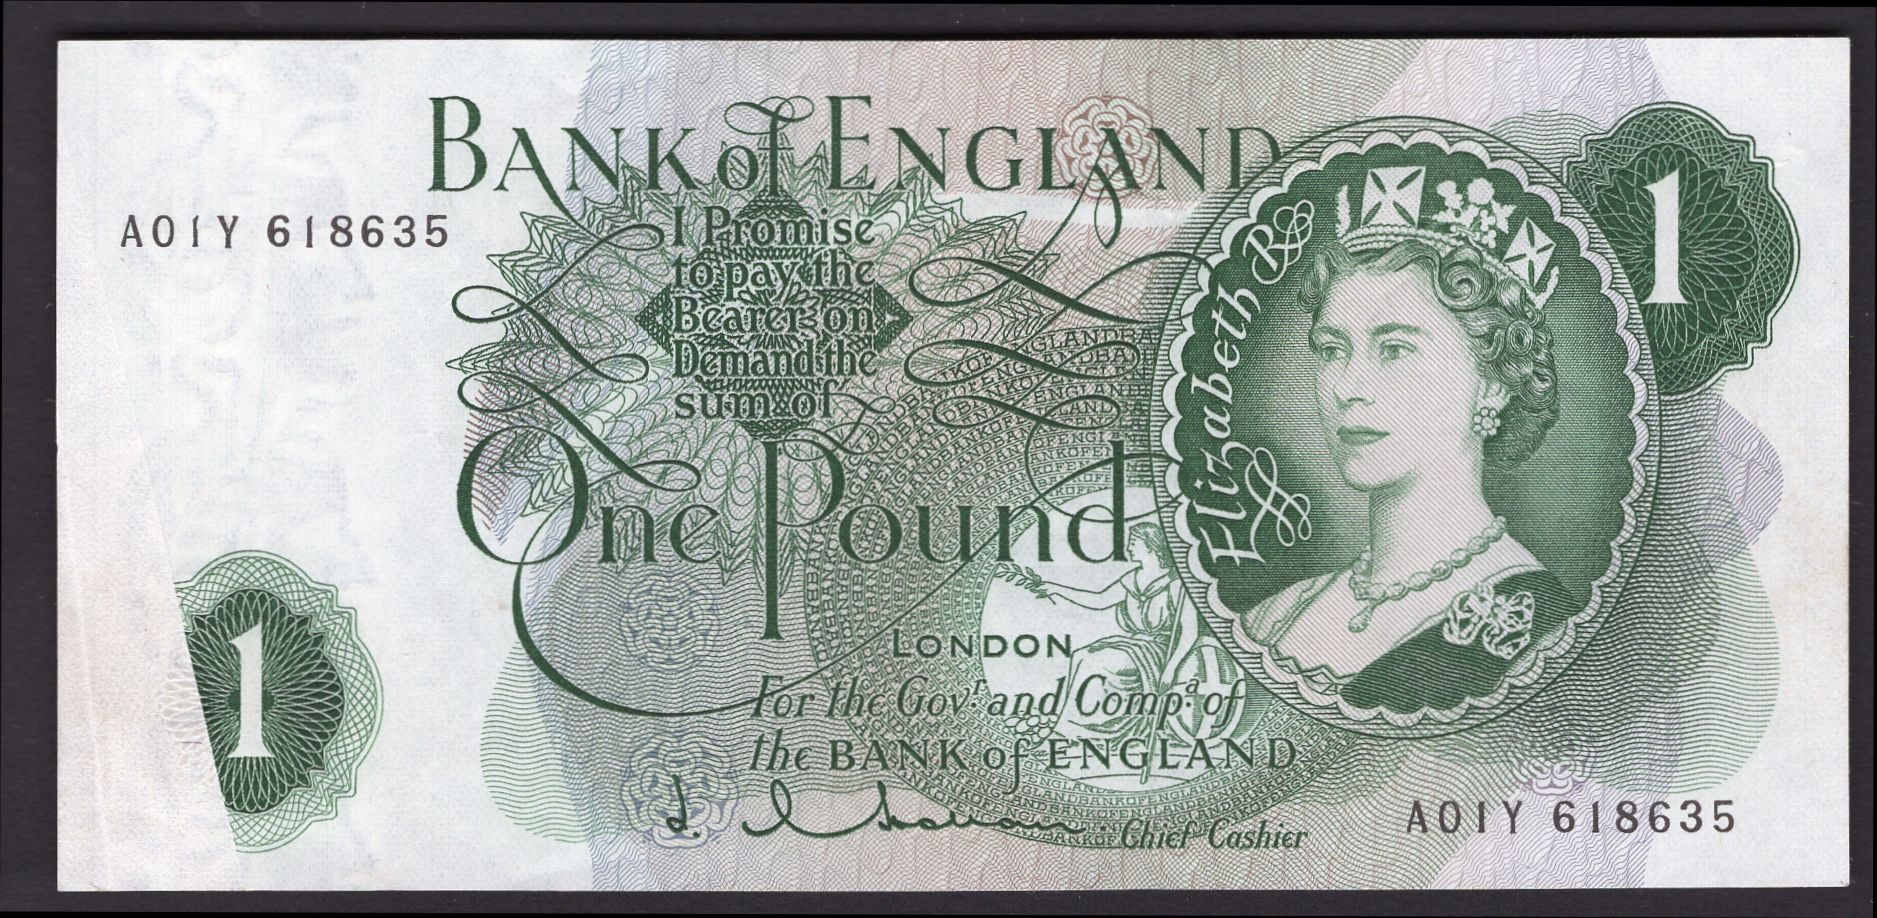 GREAT BRITAIN BANK OF ENGLAND 1960-1964 1 POUND Crisp UNC serial number varies